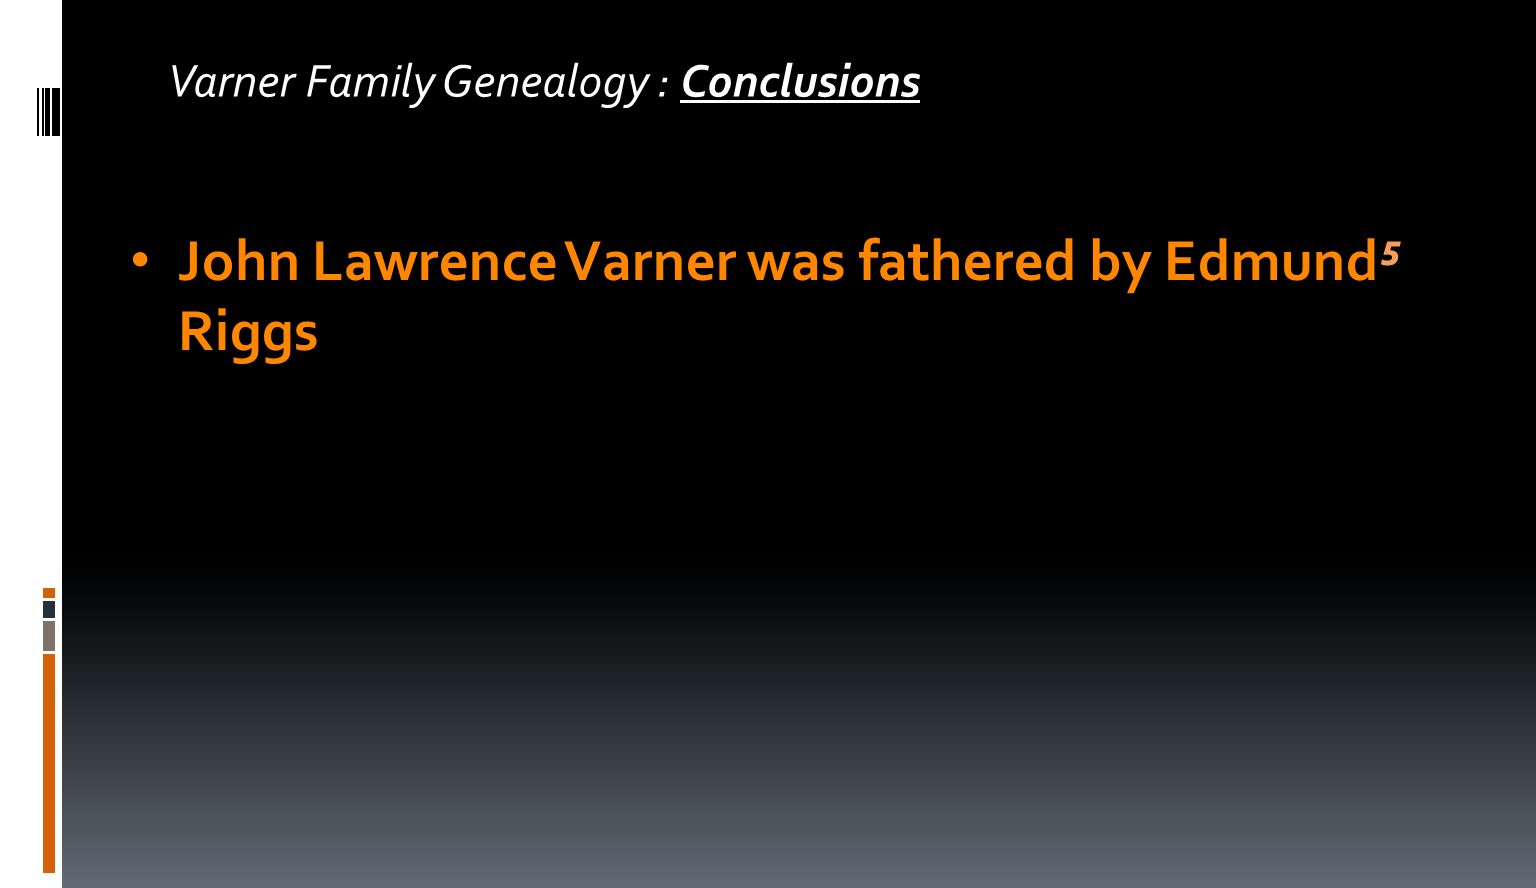 Varner Family Genealogy : Conclusions John Lawrence Varner was fathered by Edmund⁵ Riggs